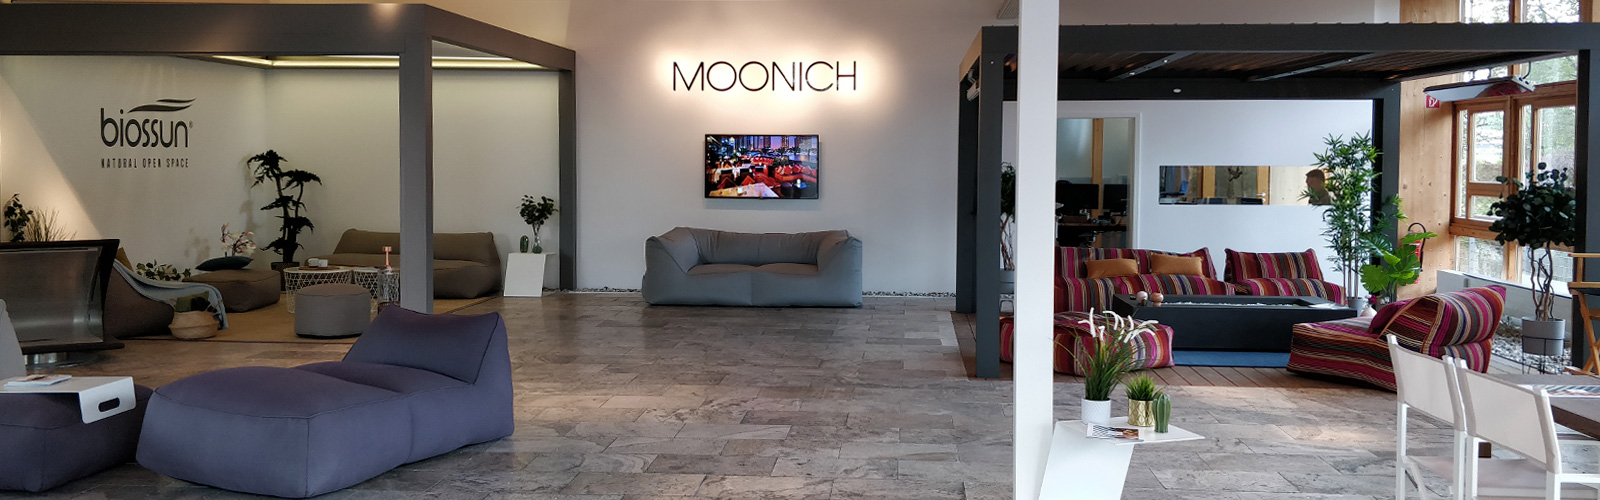 MOONICH Showroom, Kramergasse 32, 82054 Sauerlach - Contact us!